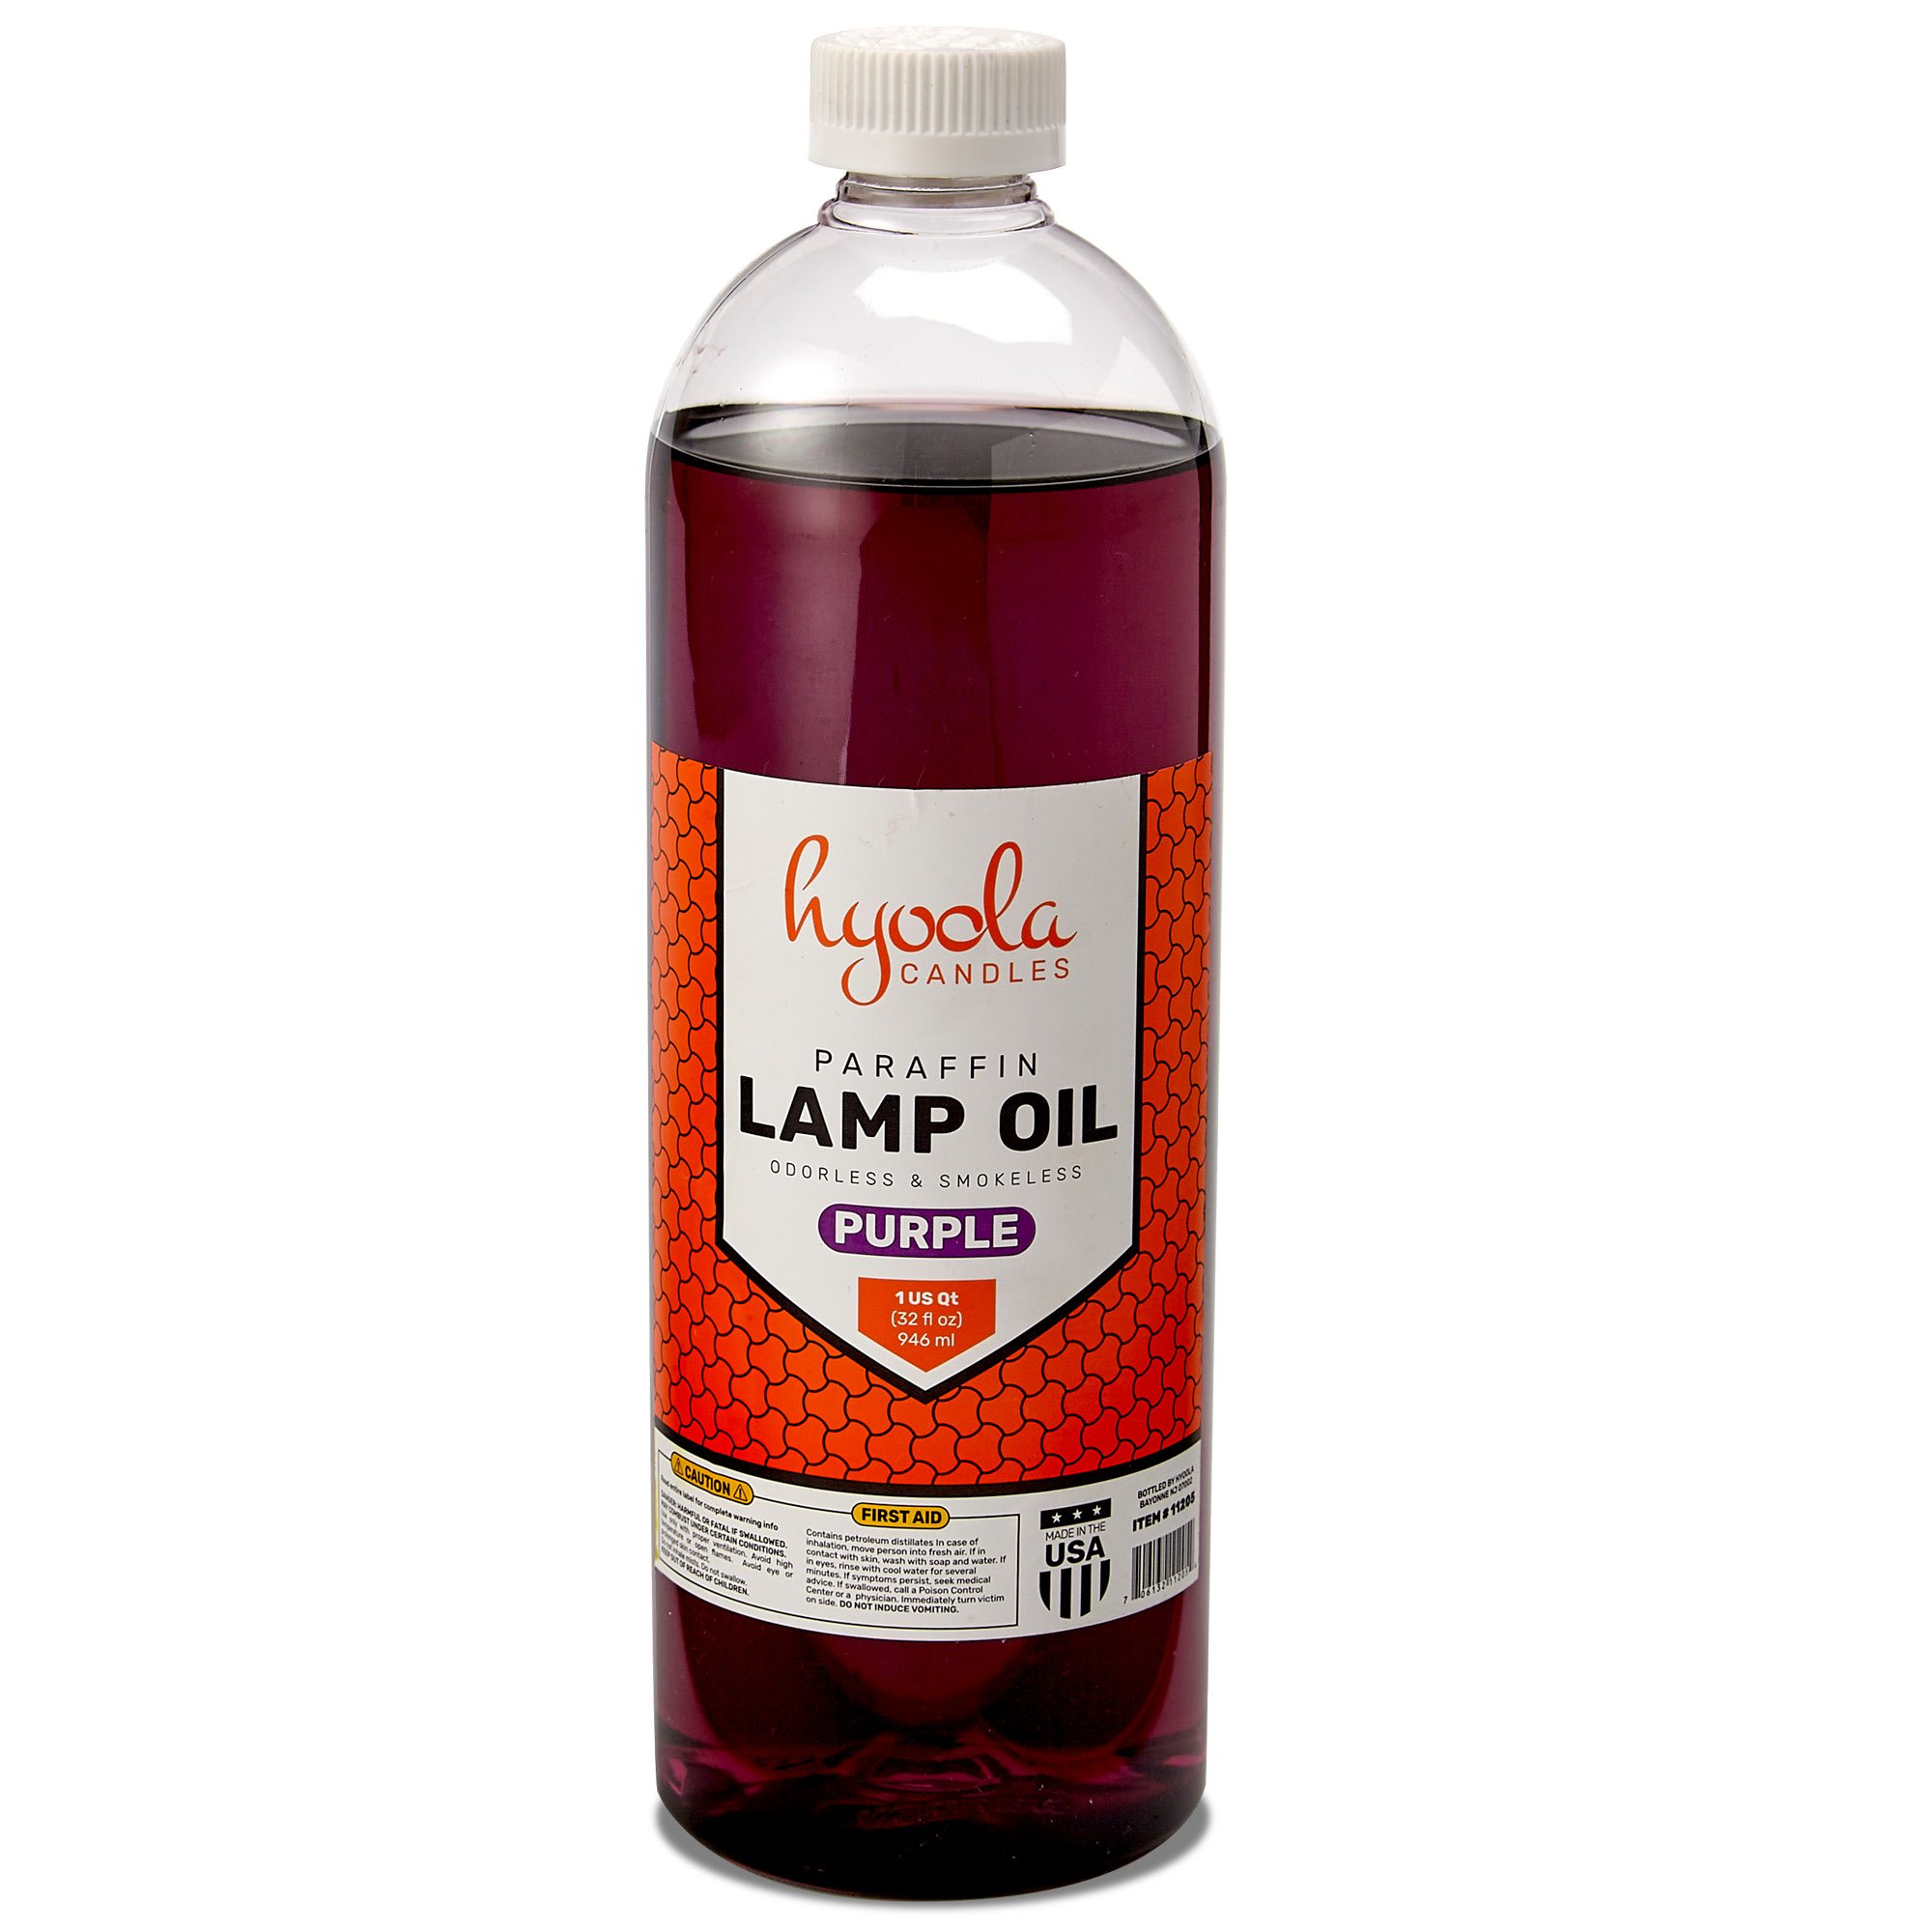 Liquid Paraffin Lamp Oil - Purple Smokeless, Odorless, Ultra Clean Burning Fuel for Indoor and Outdoor Use - Highest Purity Available - 32oz - by Hyoola Candles